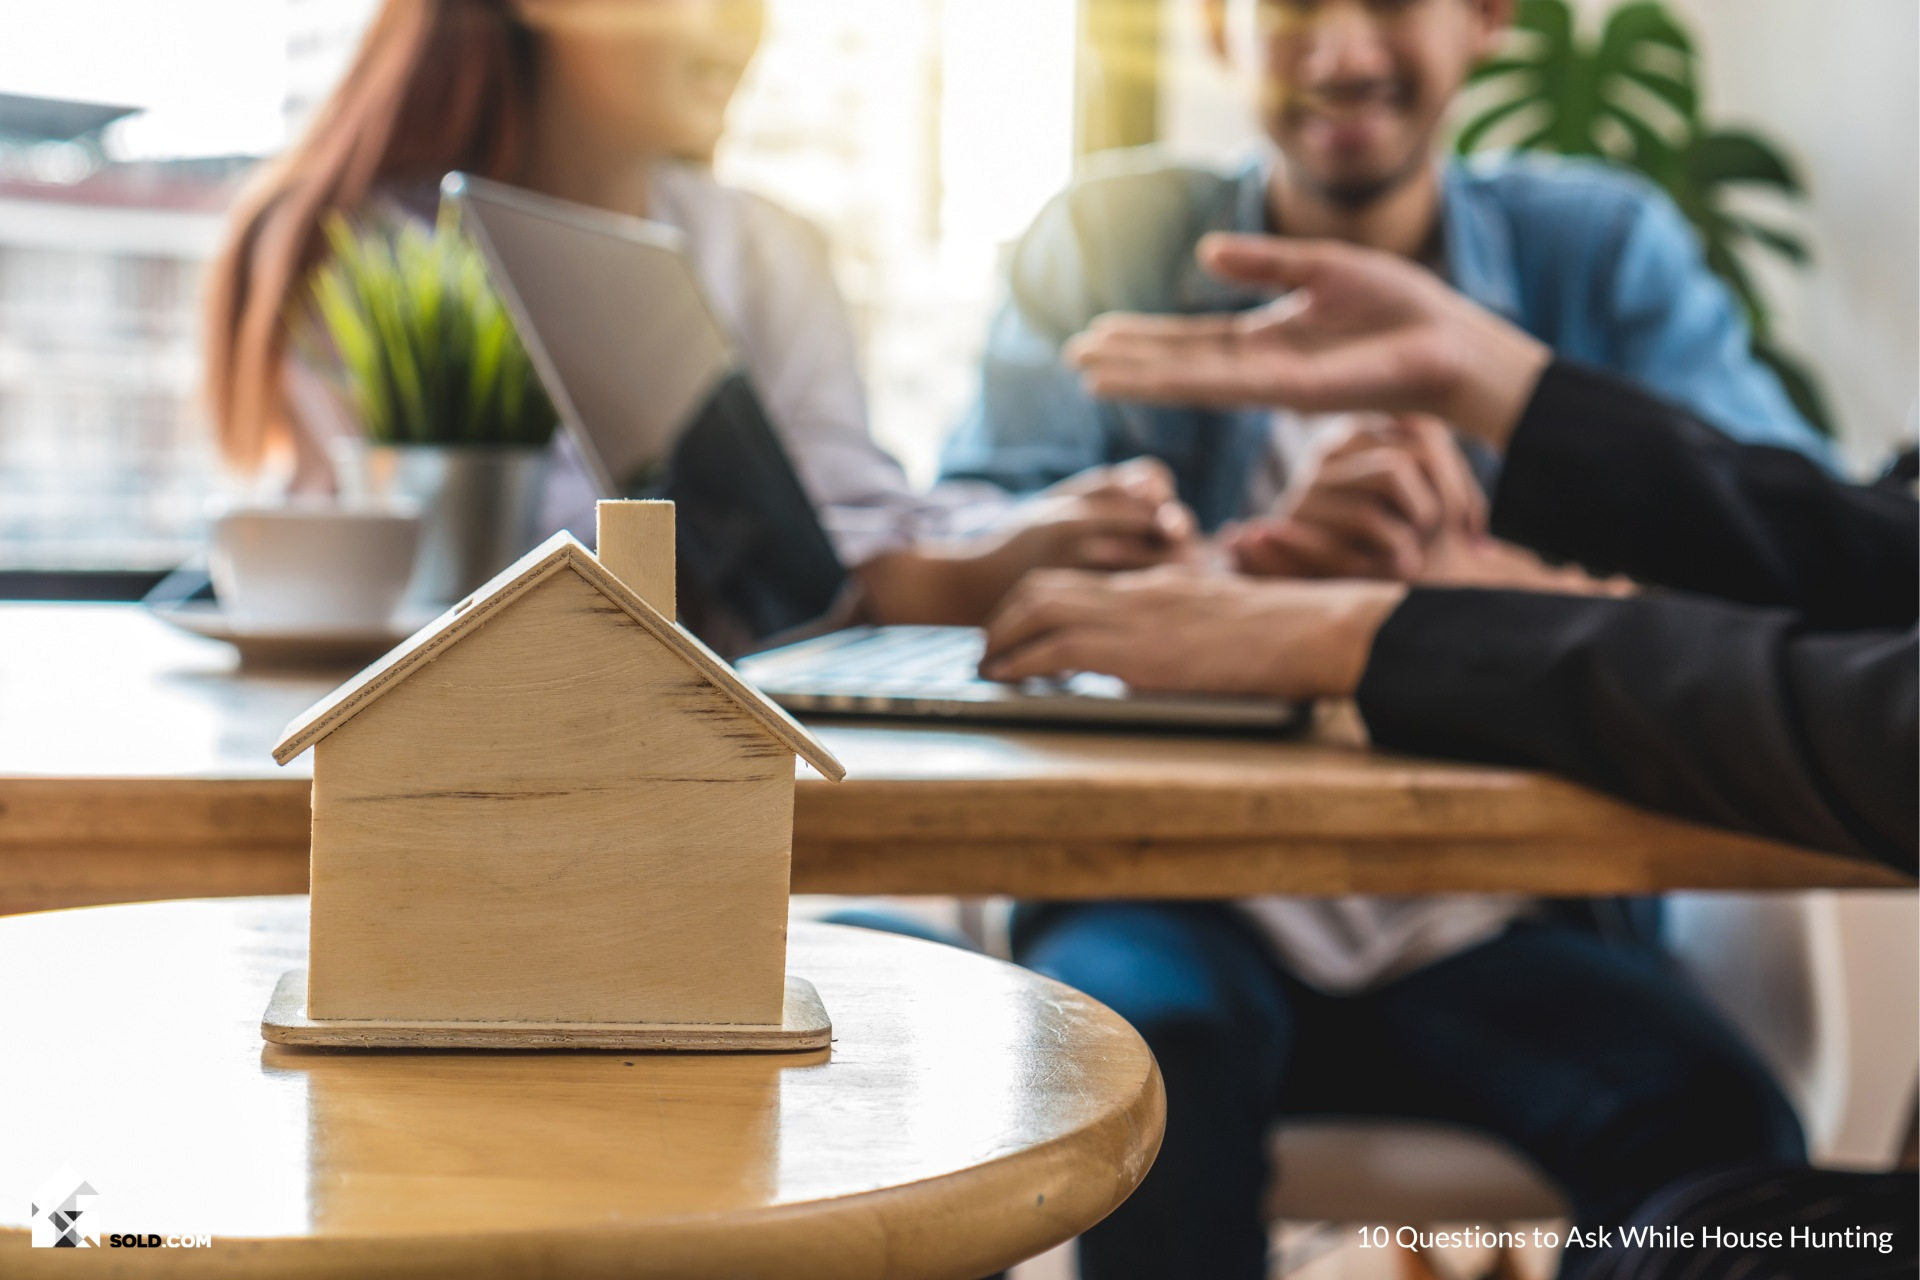 10 Questions to Ask While House Hunting